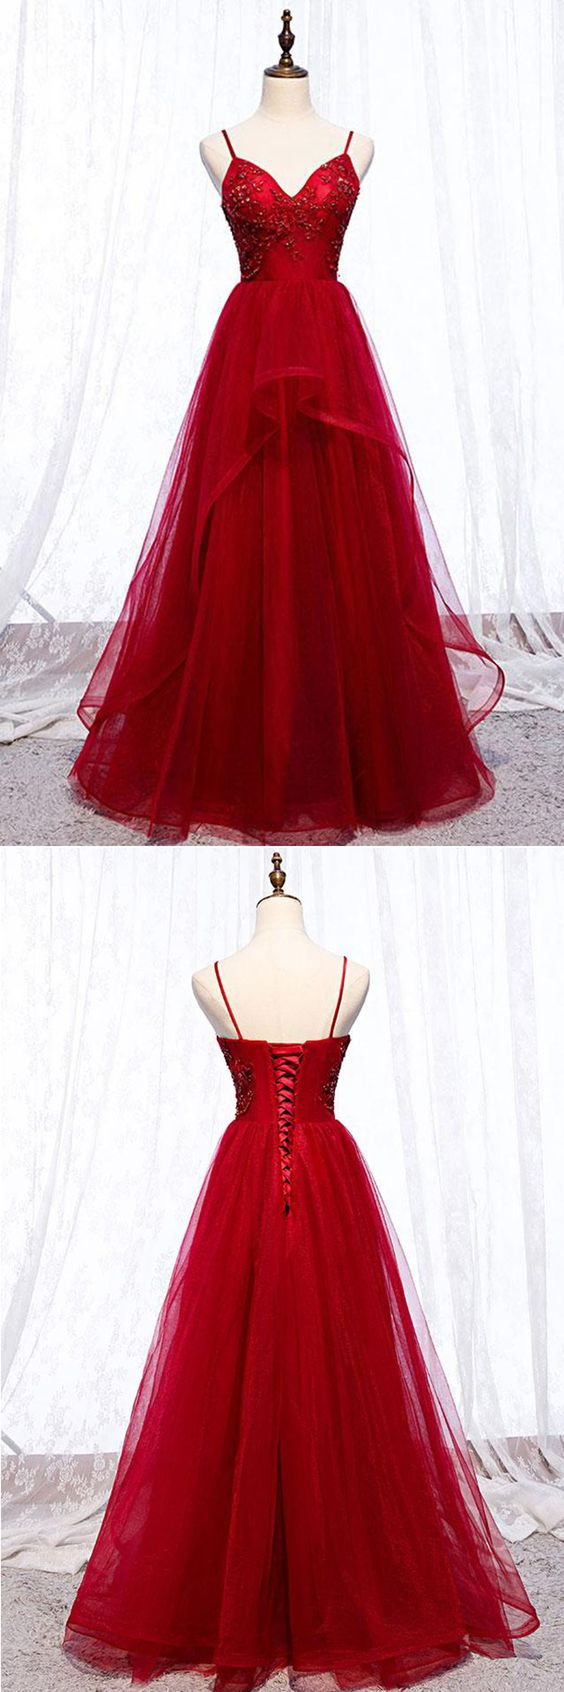 Burgundy Tulle Spaghetti Straps Long V Neck Lace Up Prom Dresses,E0631